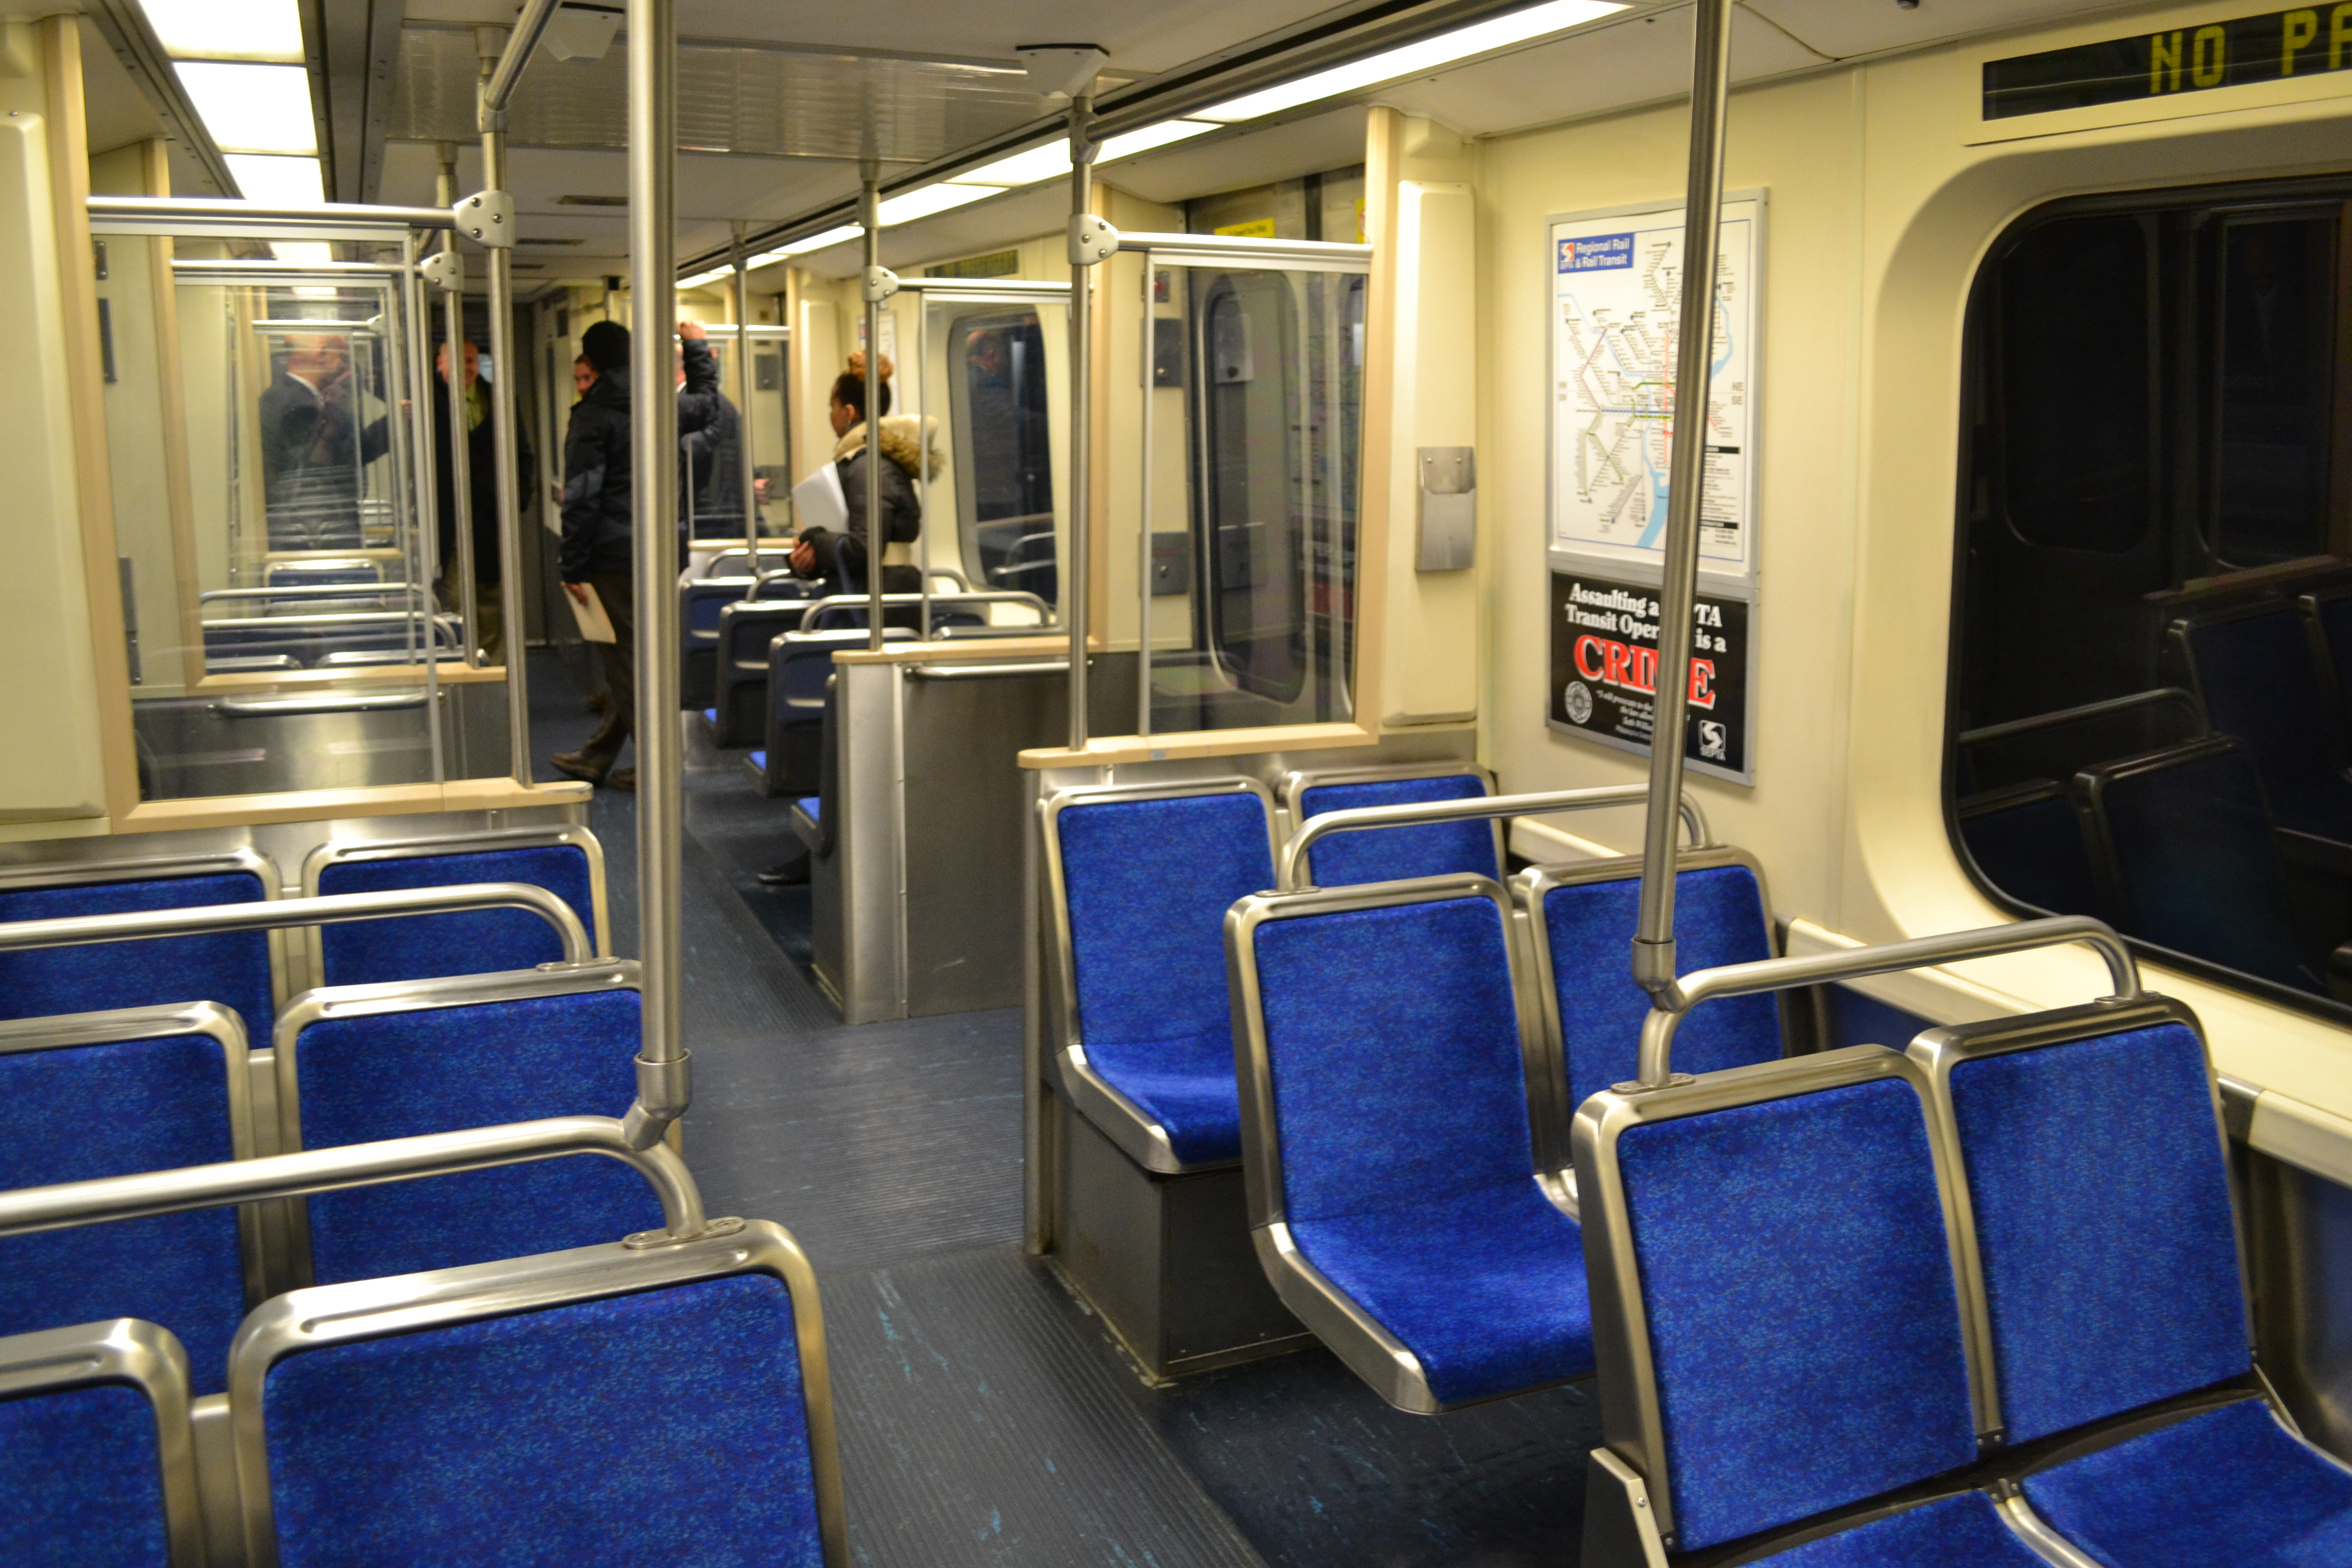 The lighting inside SEPTA's MFL cars today